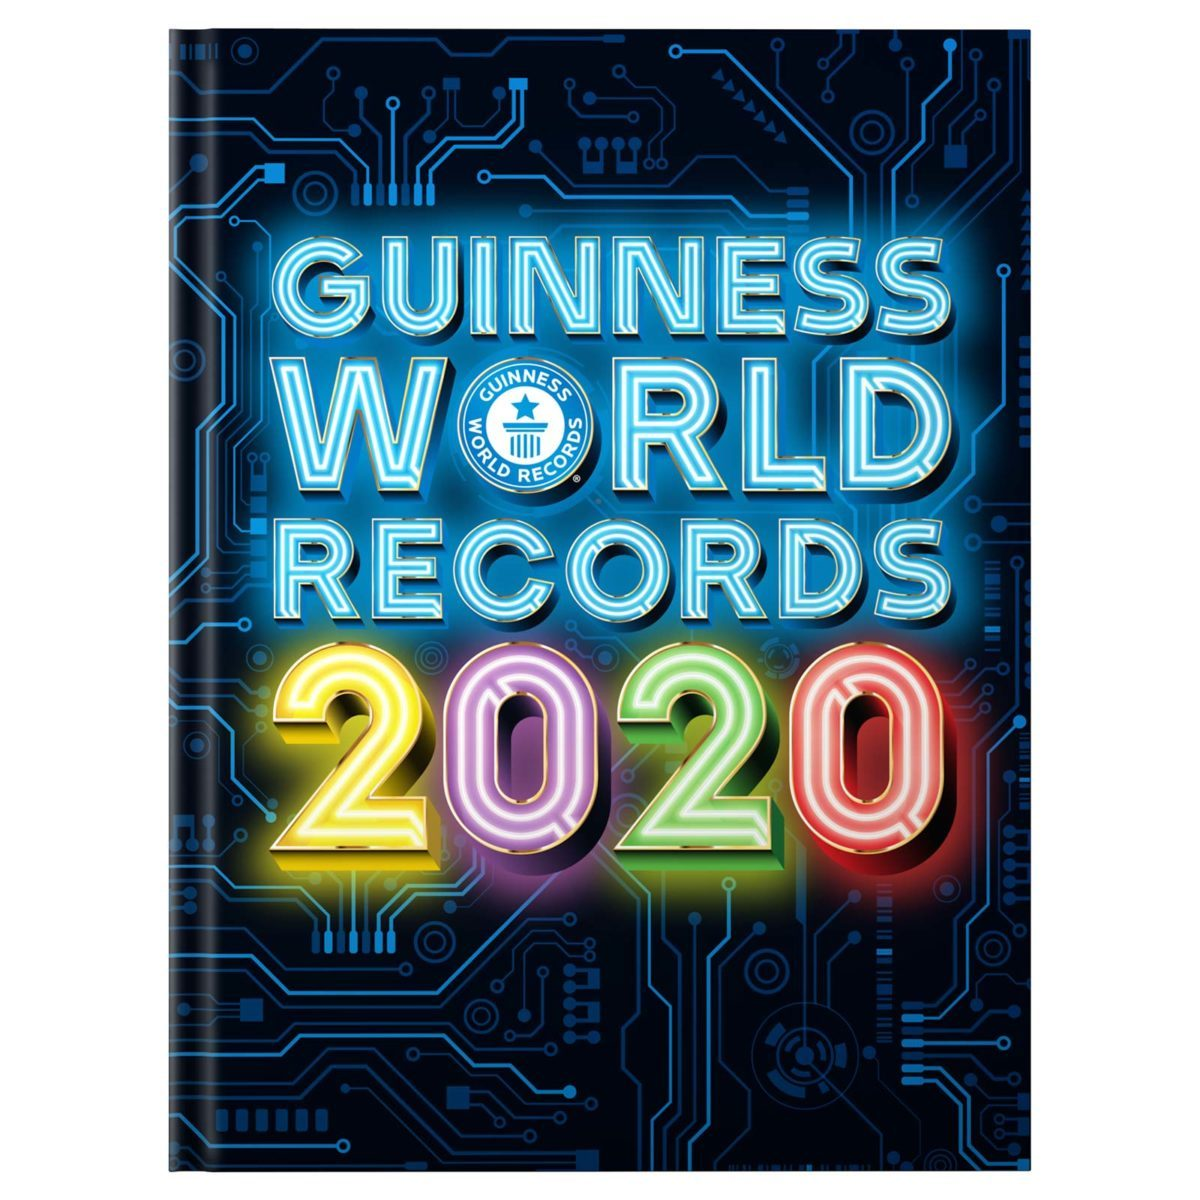 16 New World Records For 2019